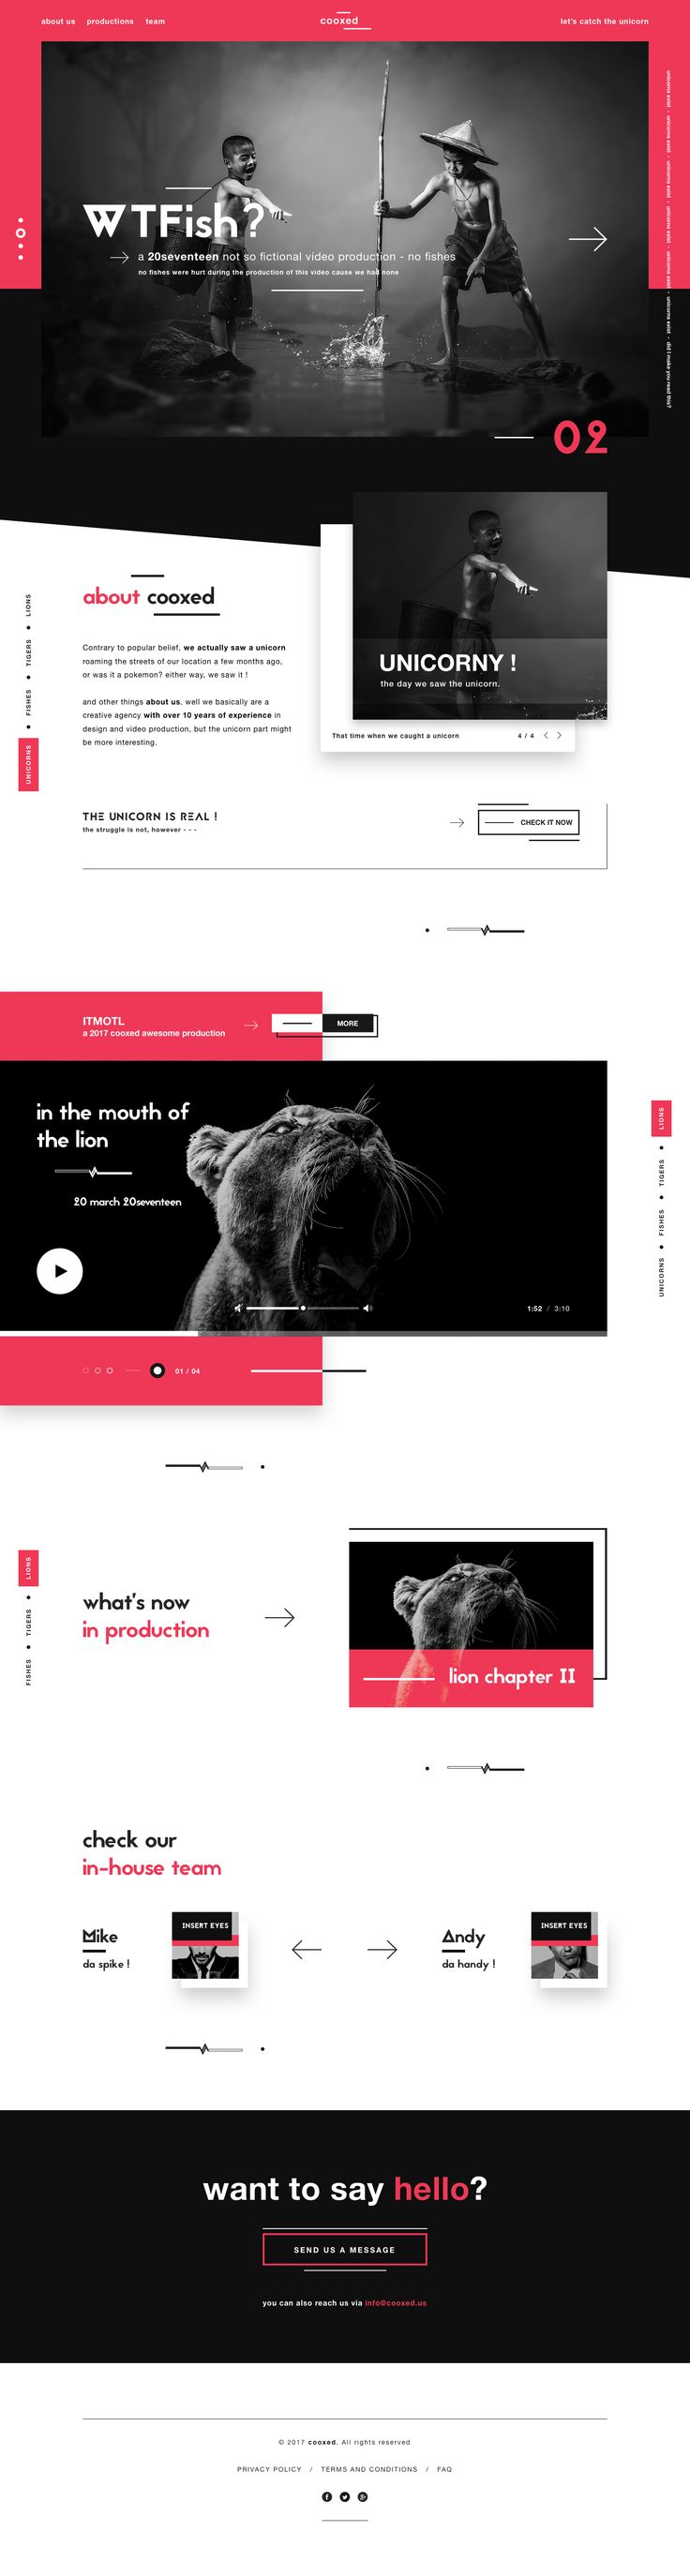 Cooxed digital video agency landing page funky dribbble modern v3